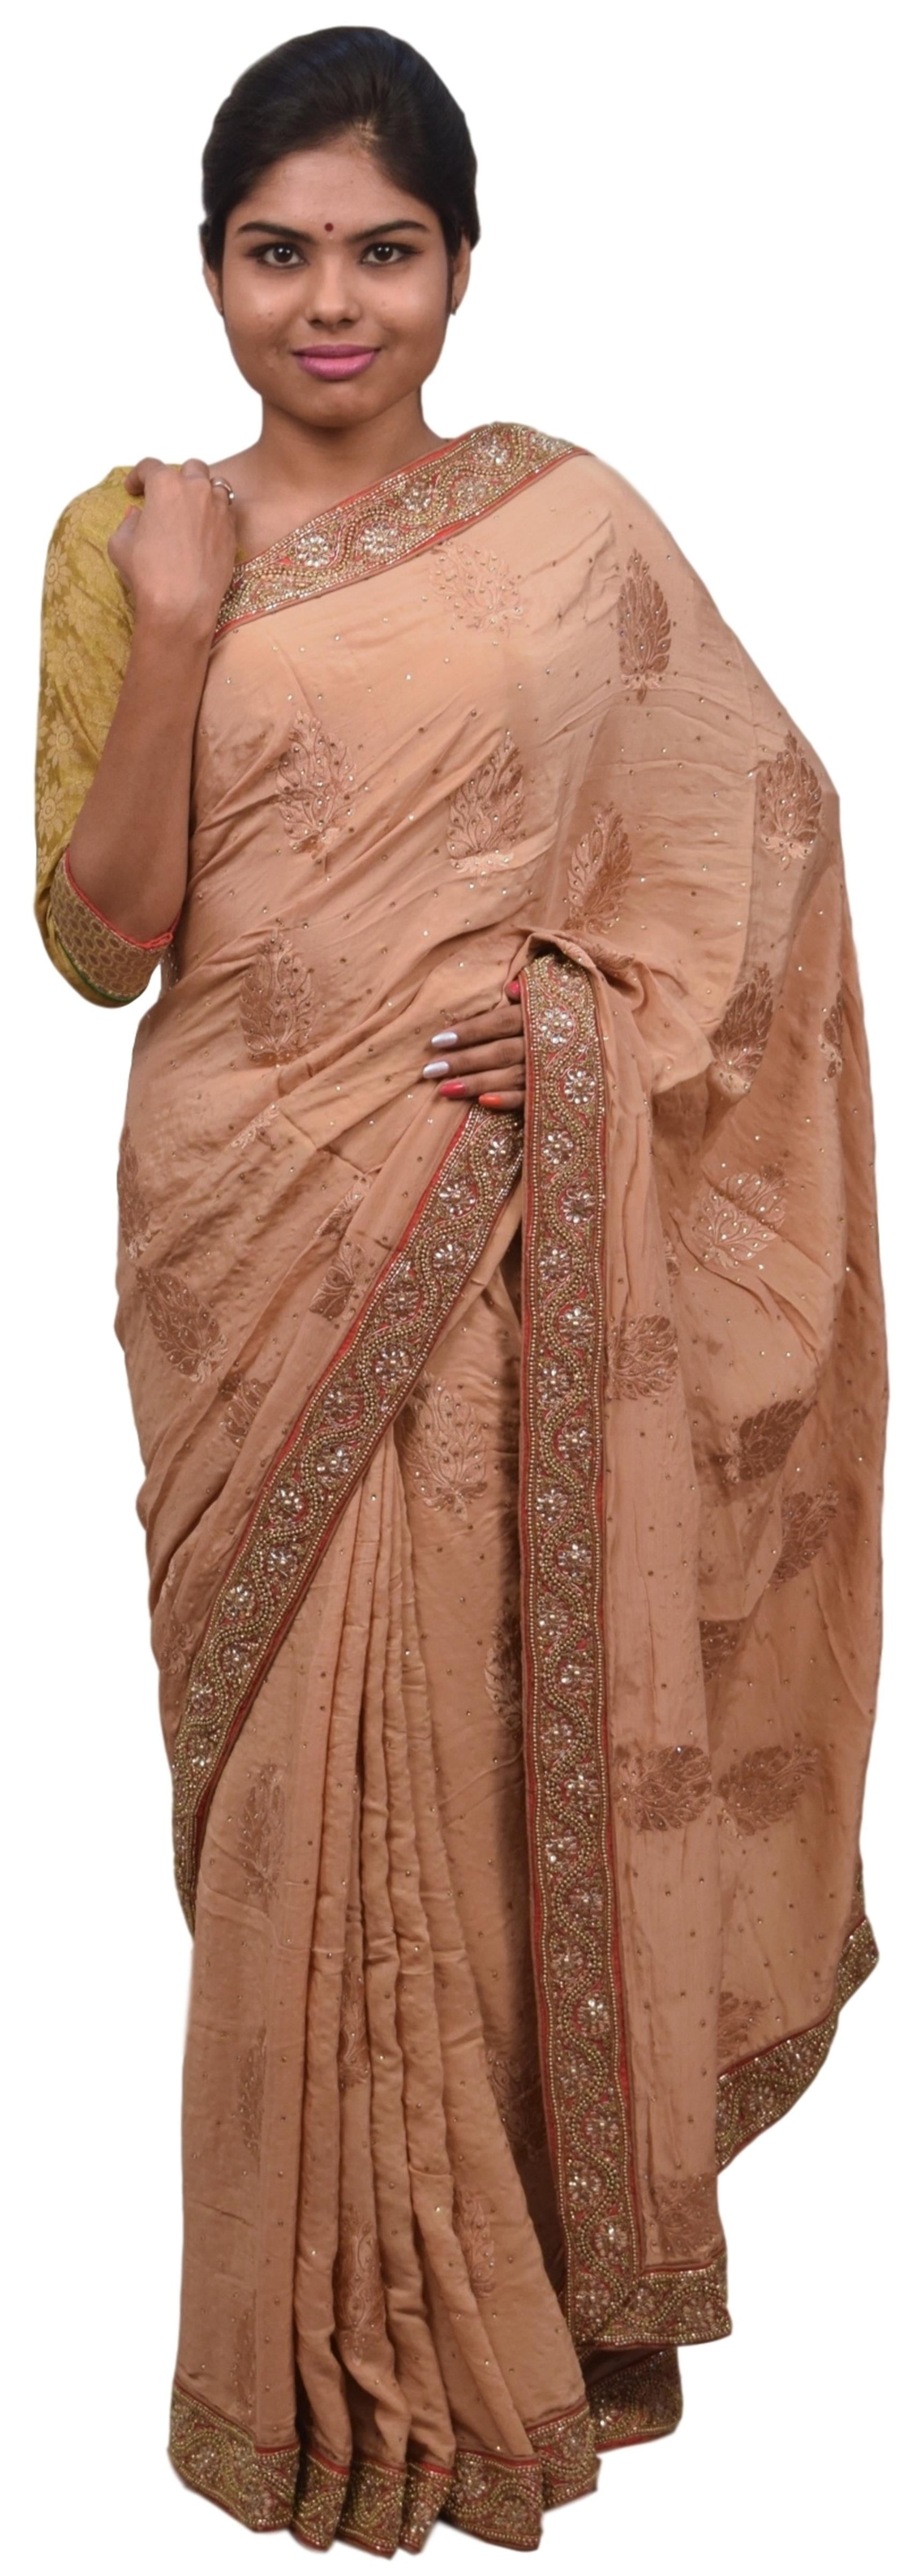 Beige Designer Wedding Partywear Ethnic Bridal Pure Crepe Hand Embroidery Cutdana Thread Bullion Stone Beads Work Kolkata Women Saree Sari E282